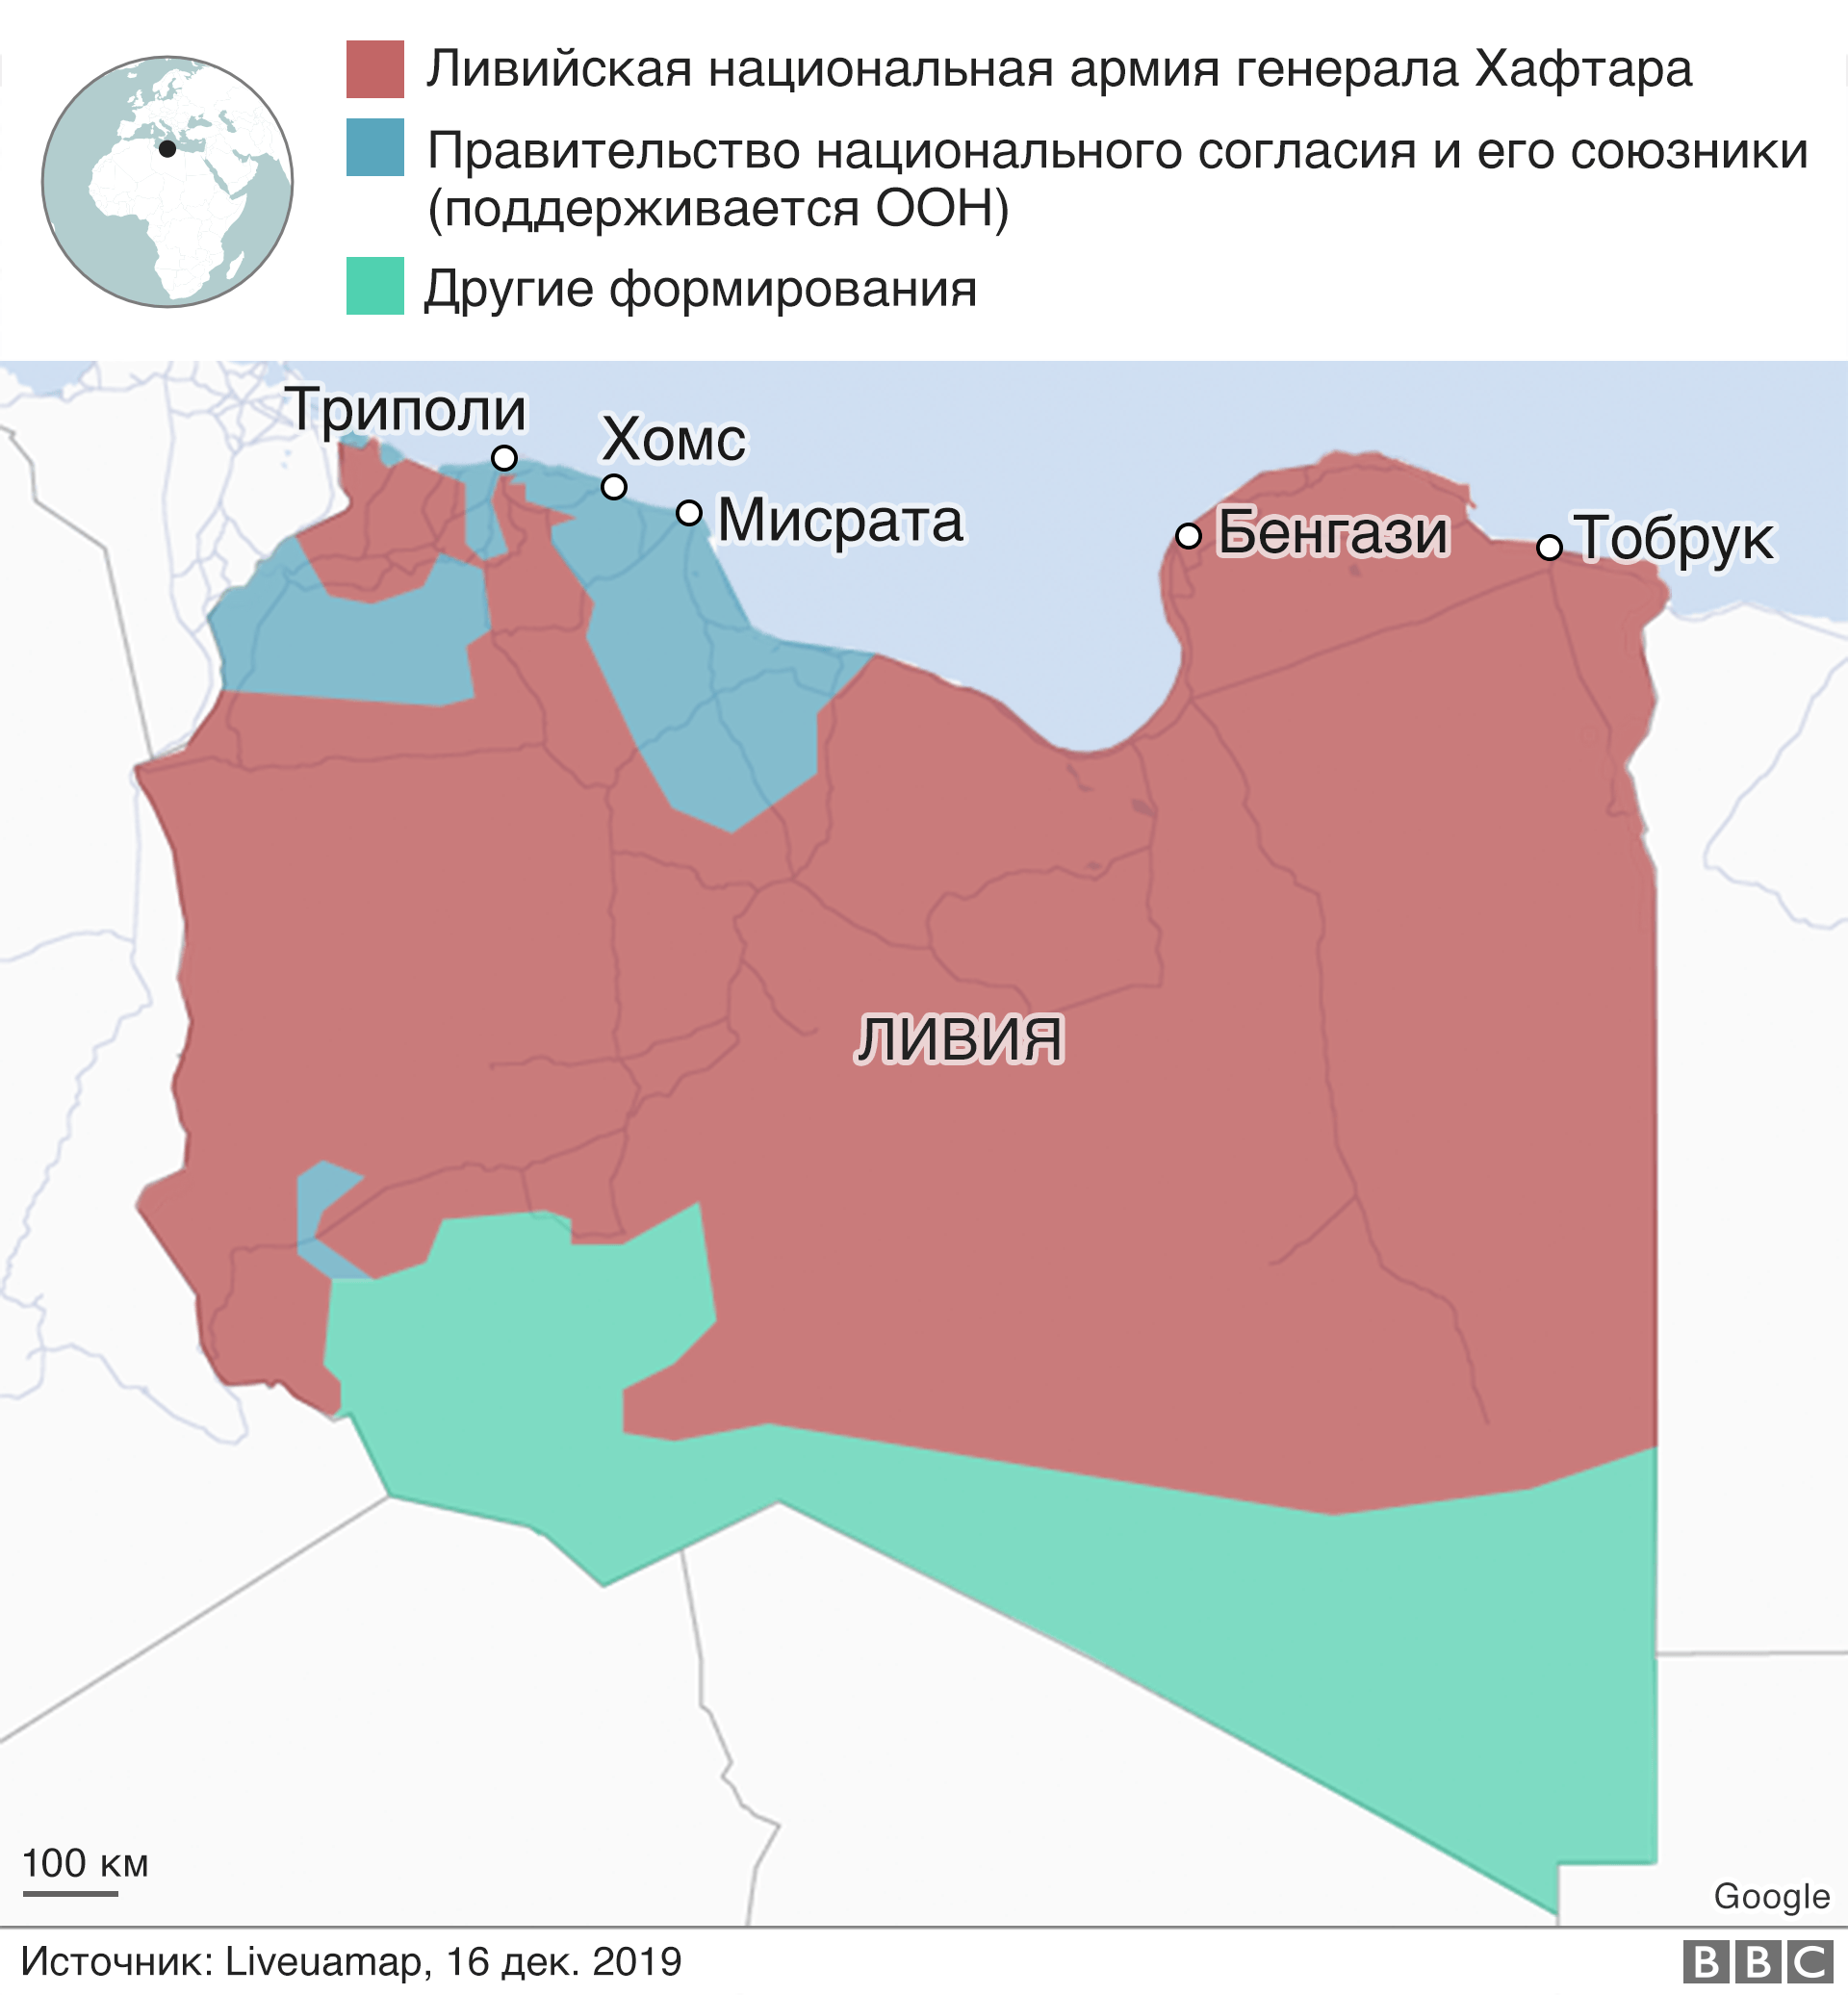 https://ichef.bbci.co.uk/news/624/cpsprodpb/14EC0/production/_110369658_libya_control_16_12_19_map_russian_640-nc.png